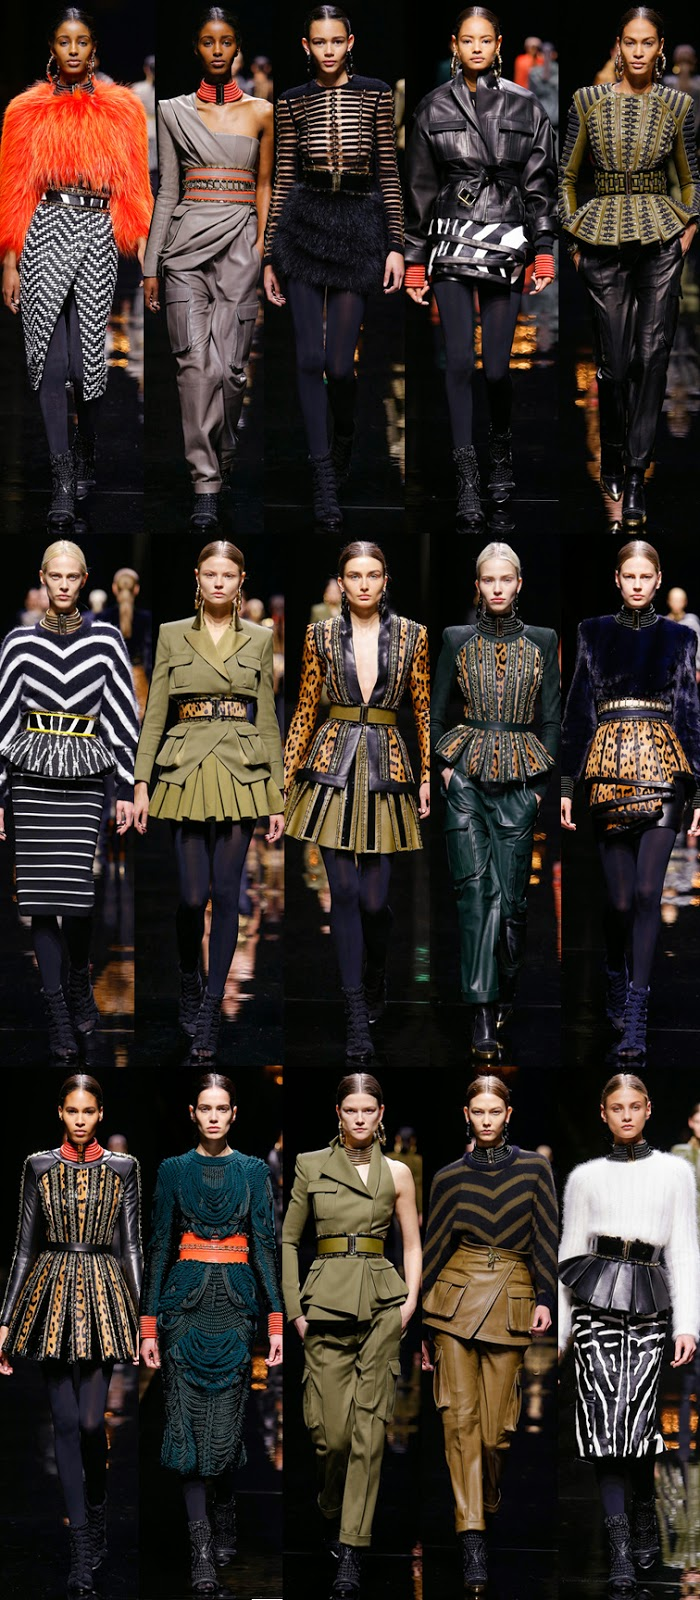 Balmain by Olivier Rousteing fall winter 2014 runway collection, PFW, Paris fashion week, FW14, AW14